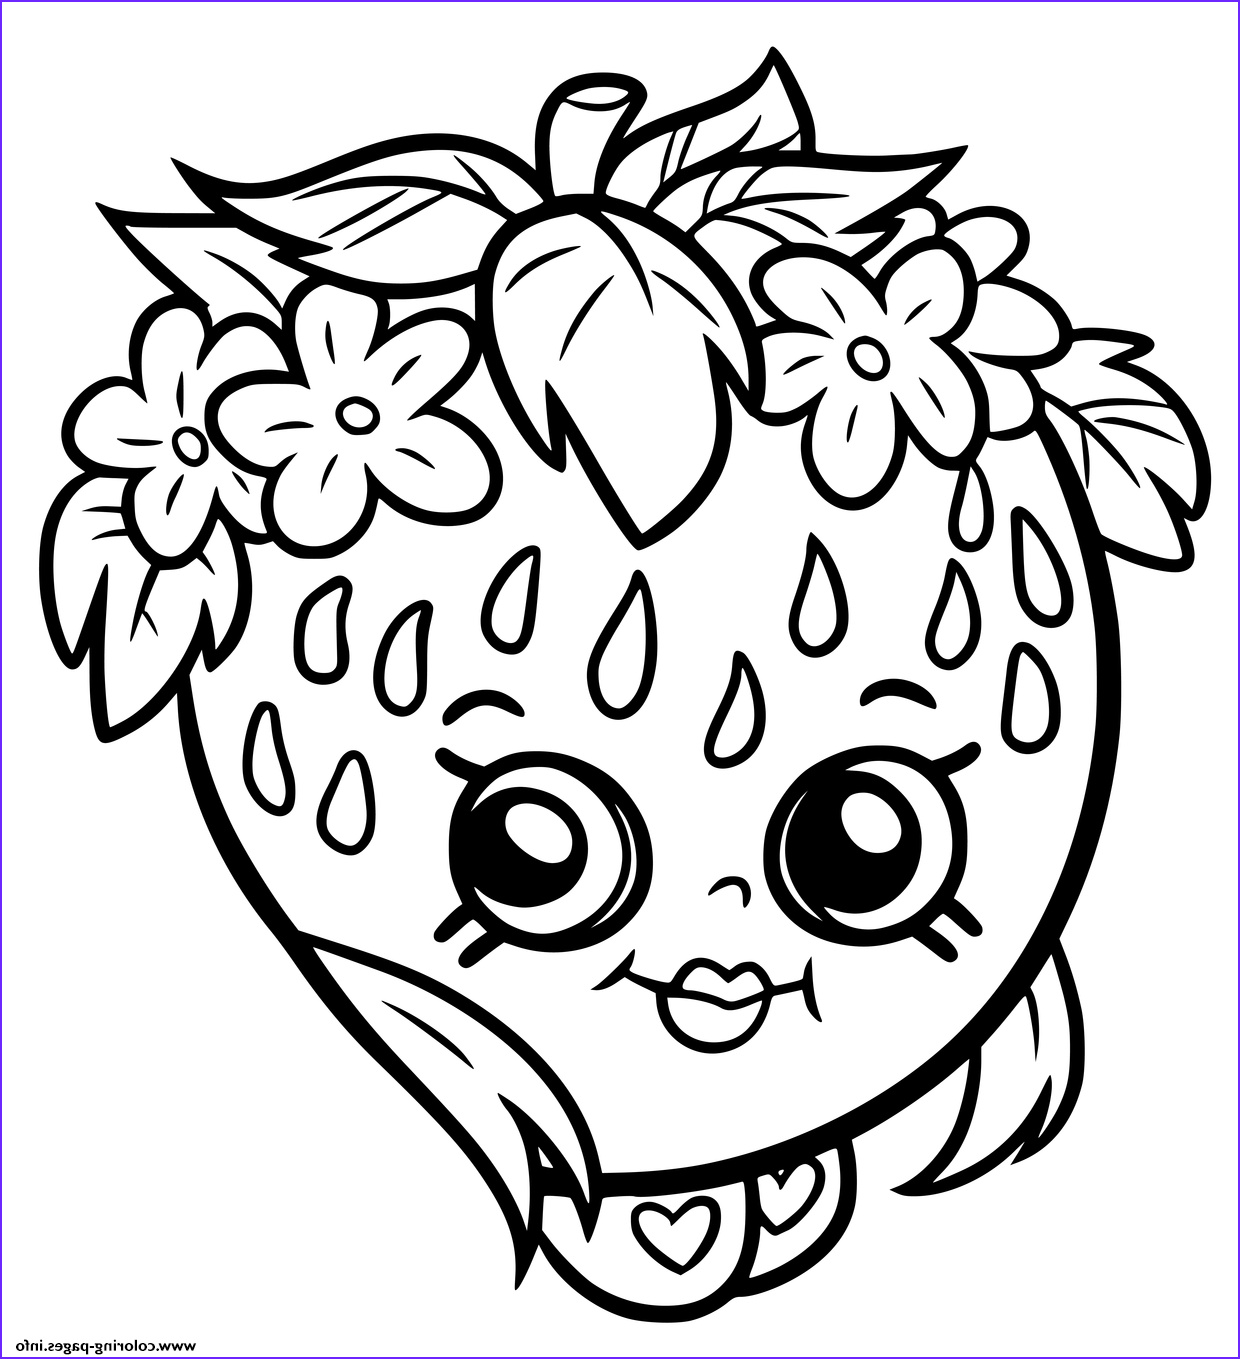 Coloring Stuff Cool Gallery Print Shopkins Strawberry Smile Coloring Pages